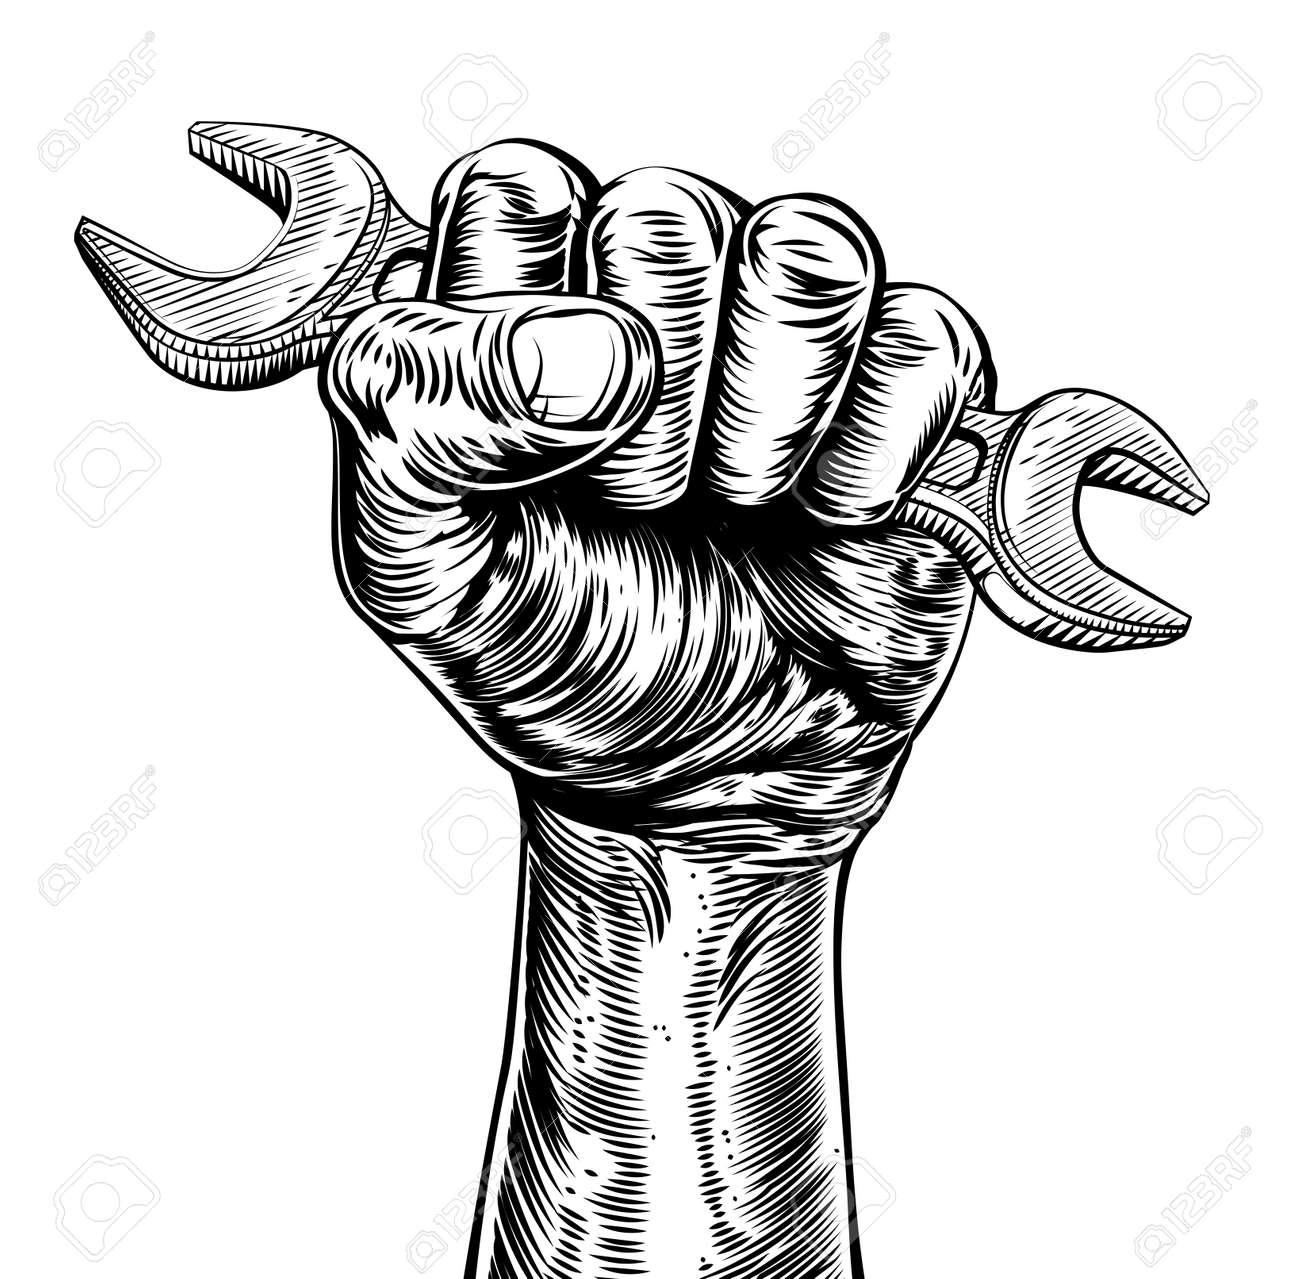 A vintage etched woodcut style fist holding a spanner or wrench tool - 57729137